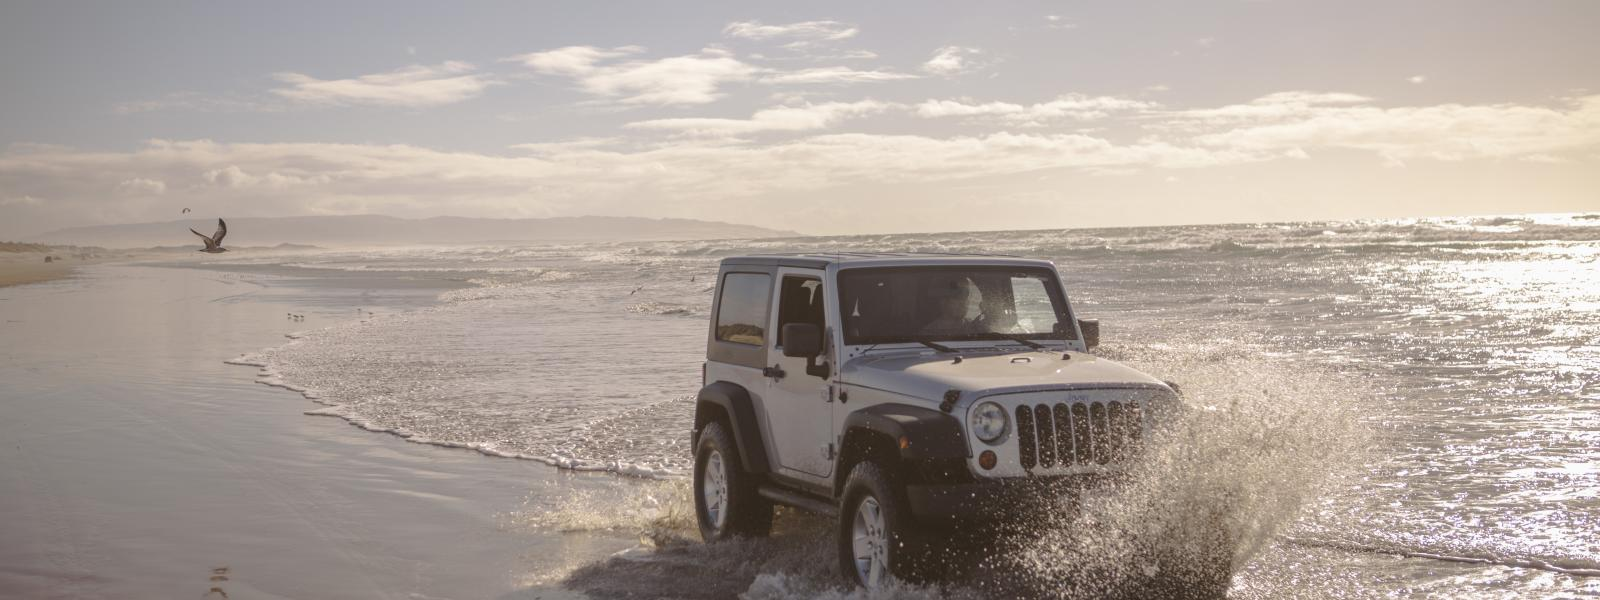 A white Jeep diving on a San Luis Obispo beach, splashing through the water